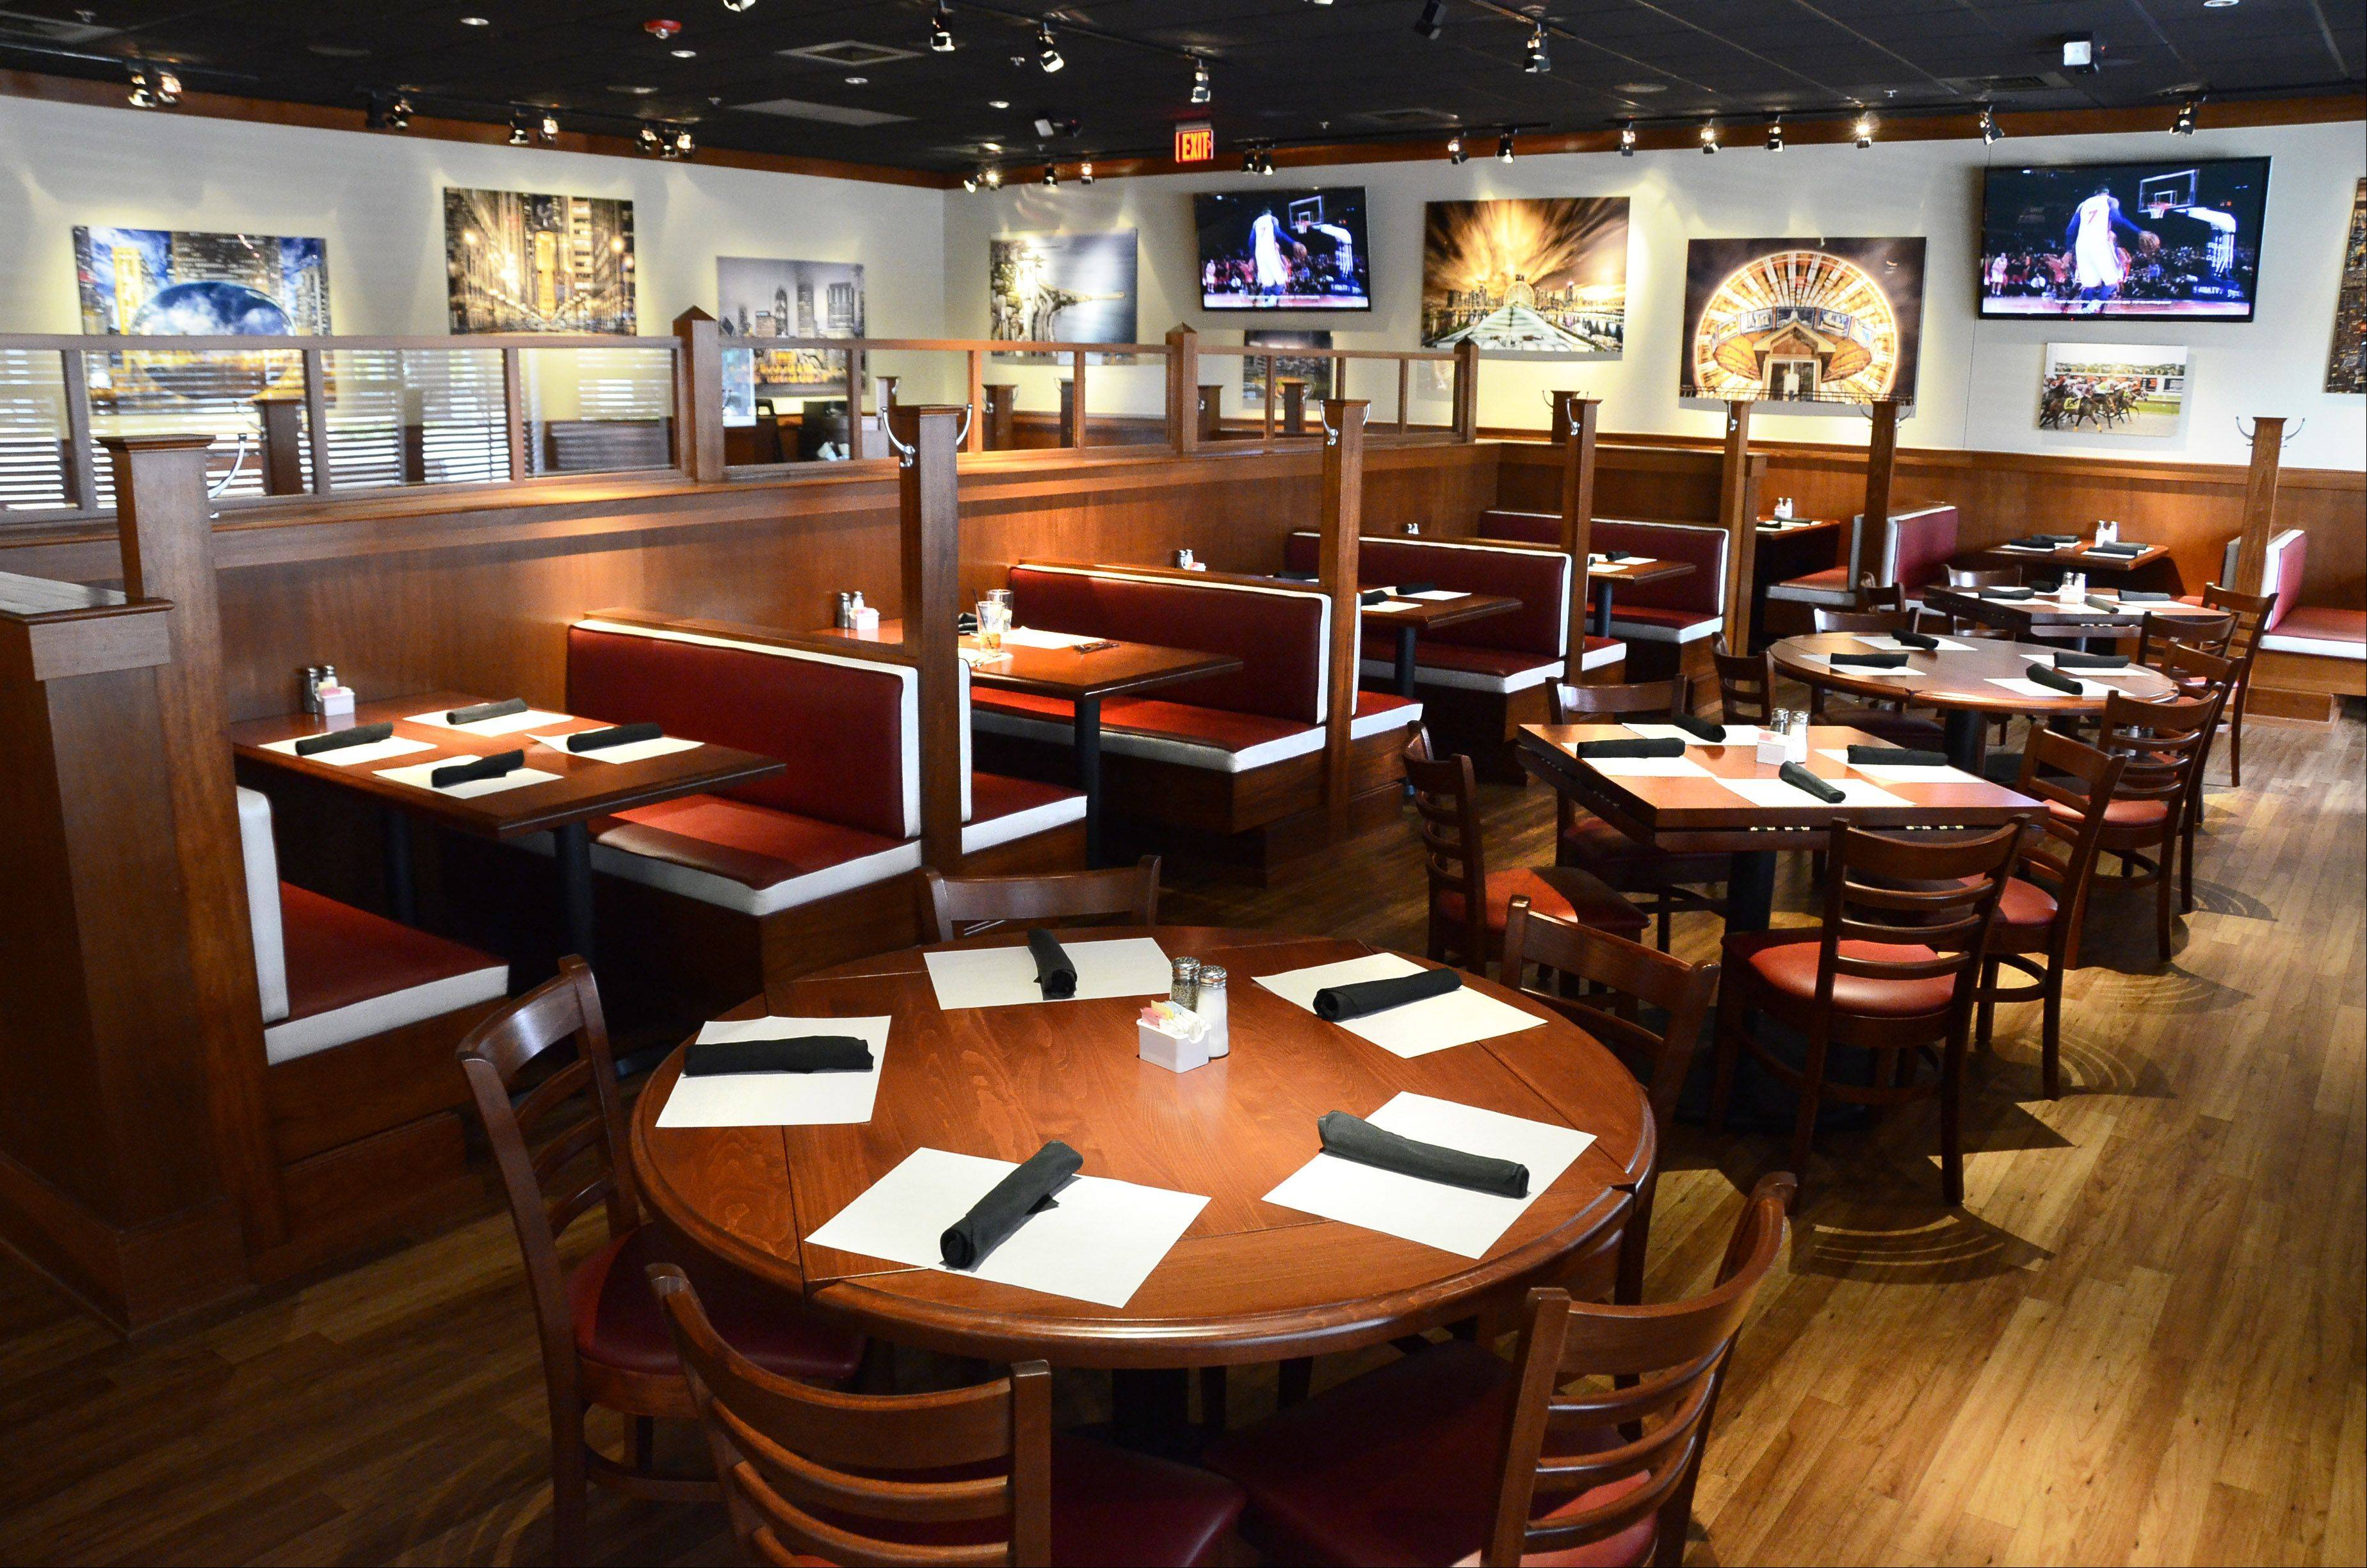 The dining room at BlackFinn American Grill at Randhurst Village features warm woods and cozy booths.